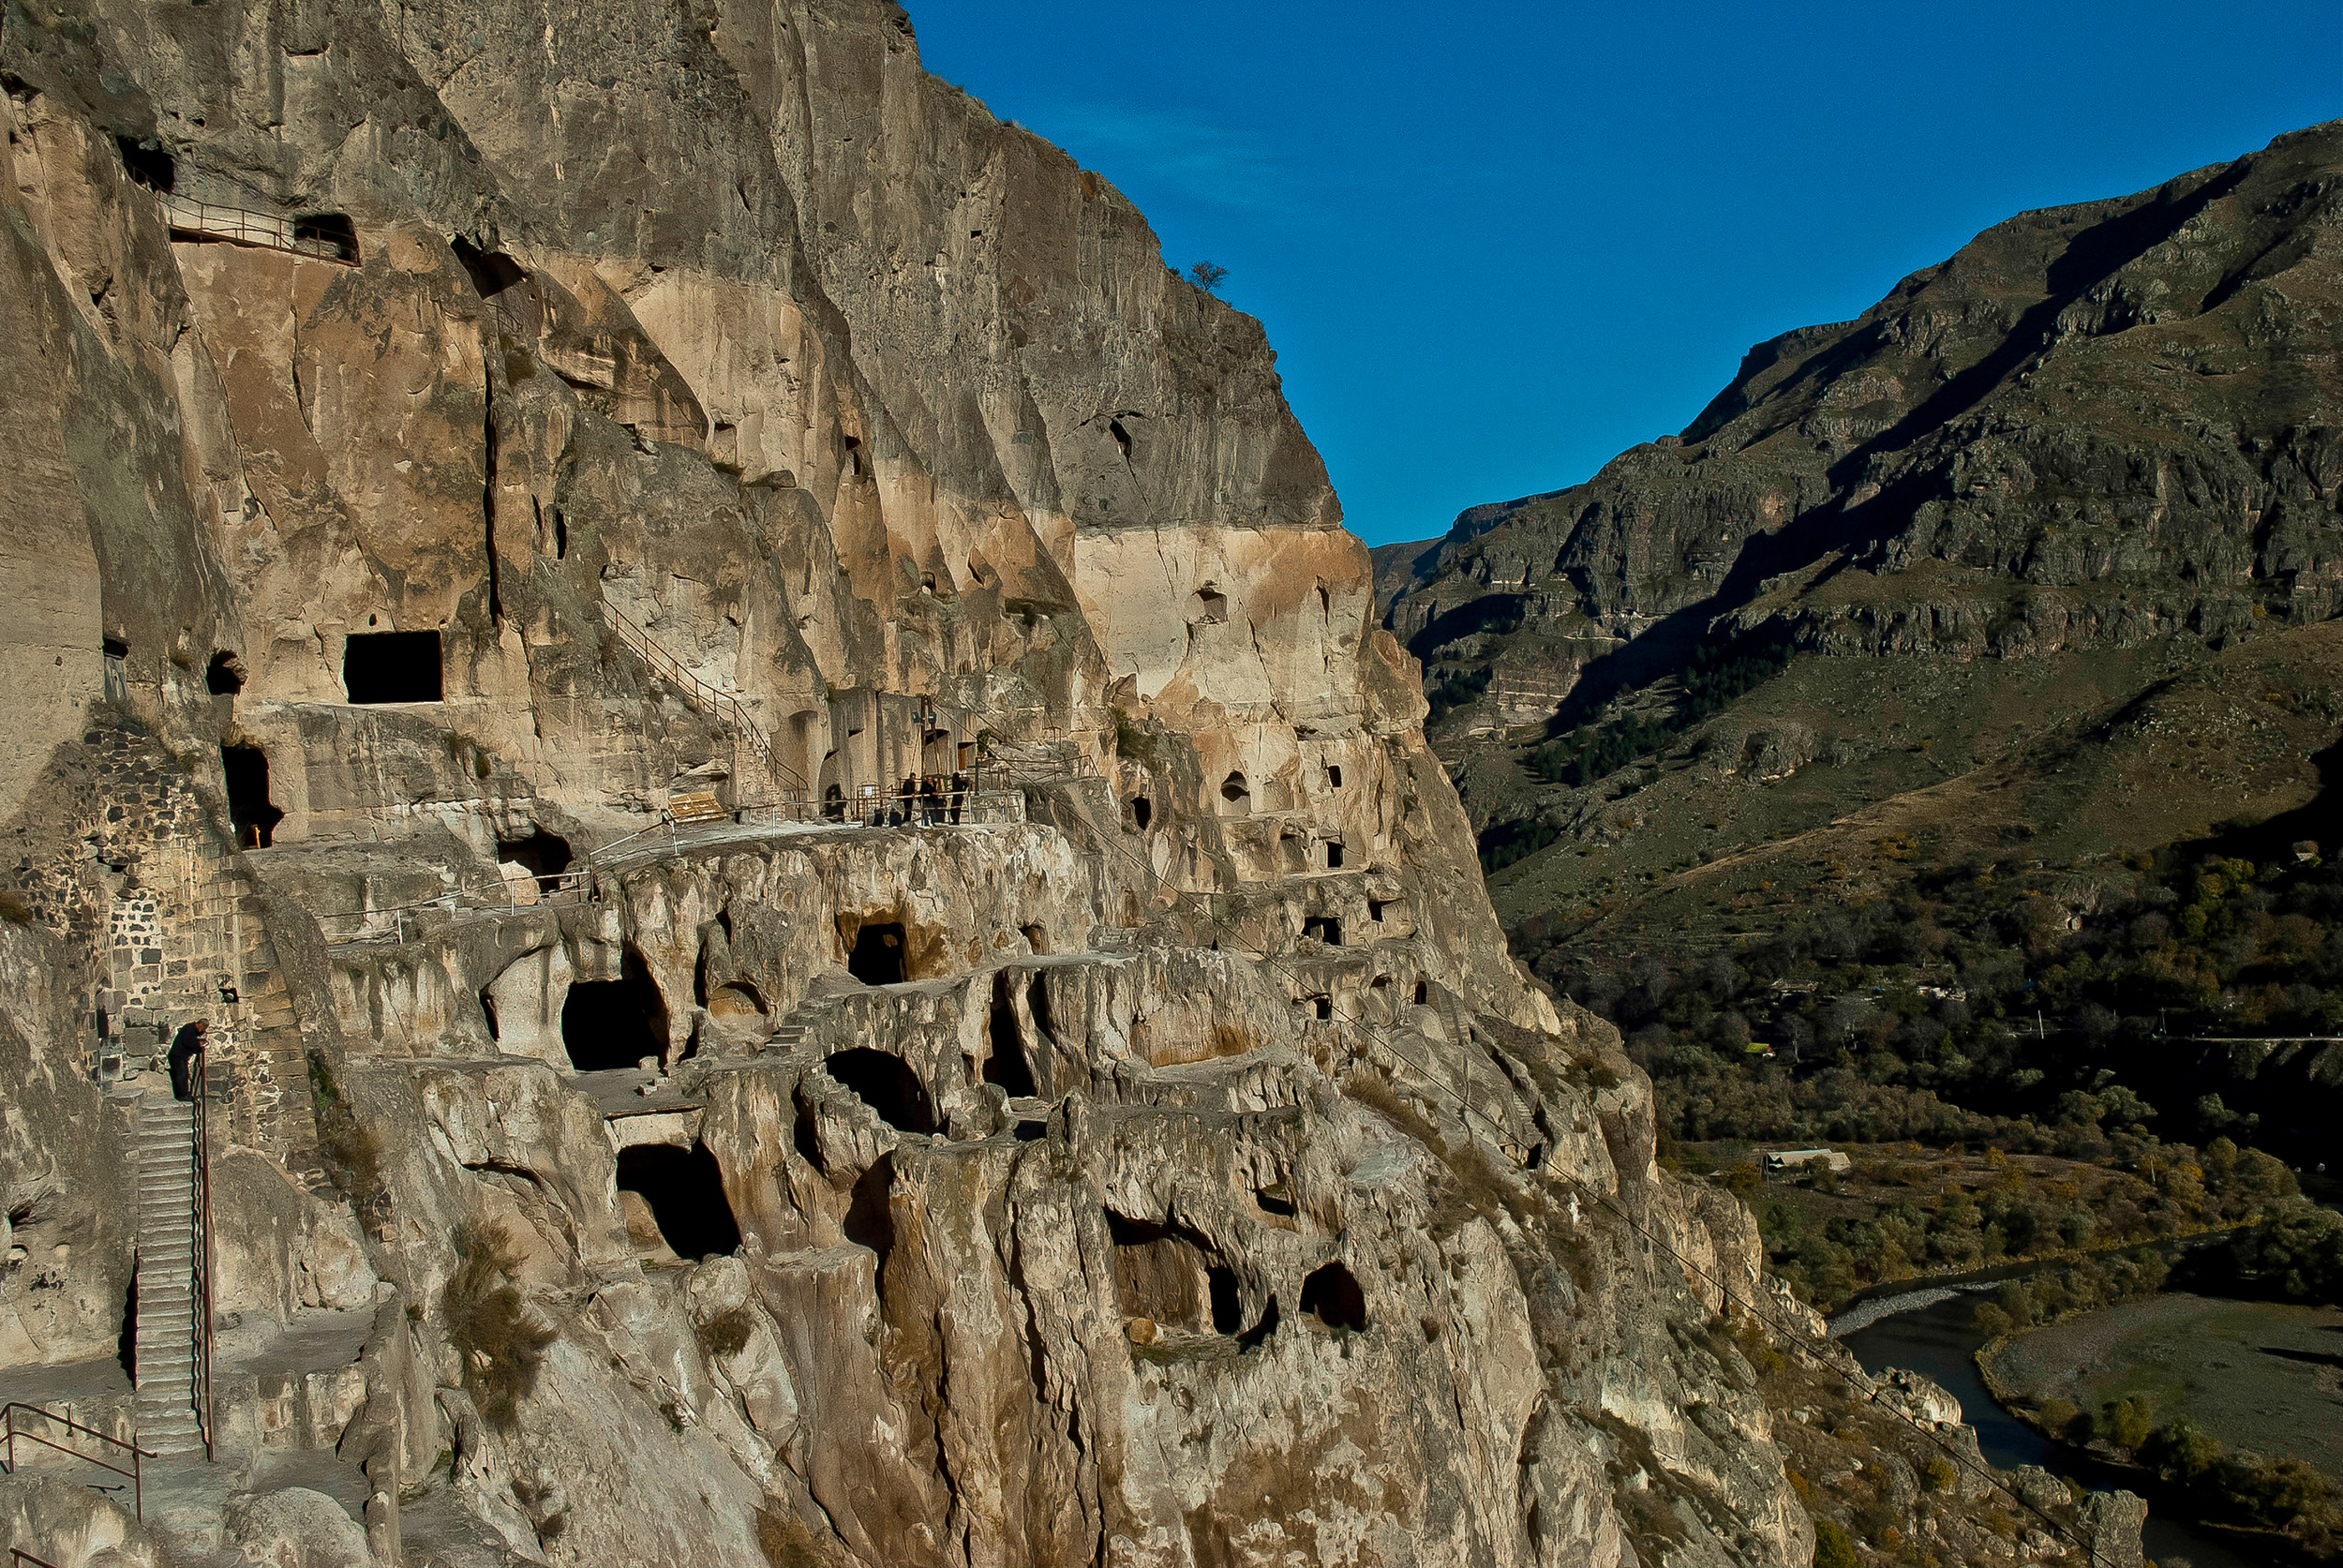 The mountain monastery of Vardzia